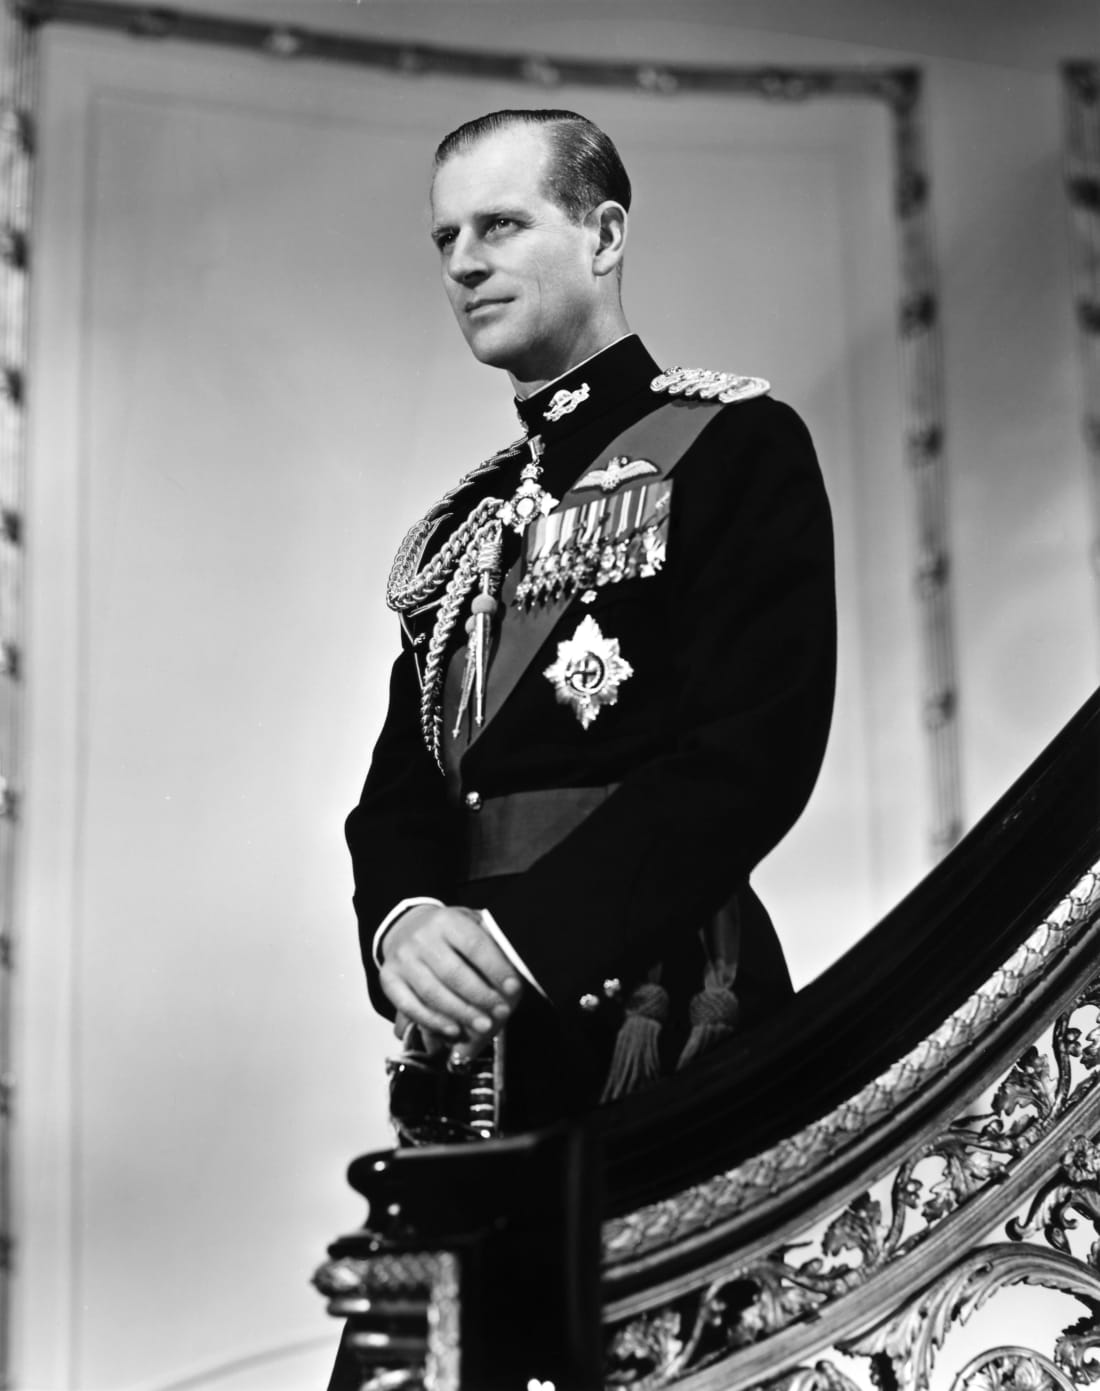 Prince Philip for a portrait in Buckingham Palace in 1958 (Photo by Michael Ochs)